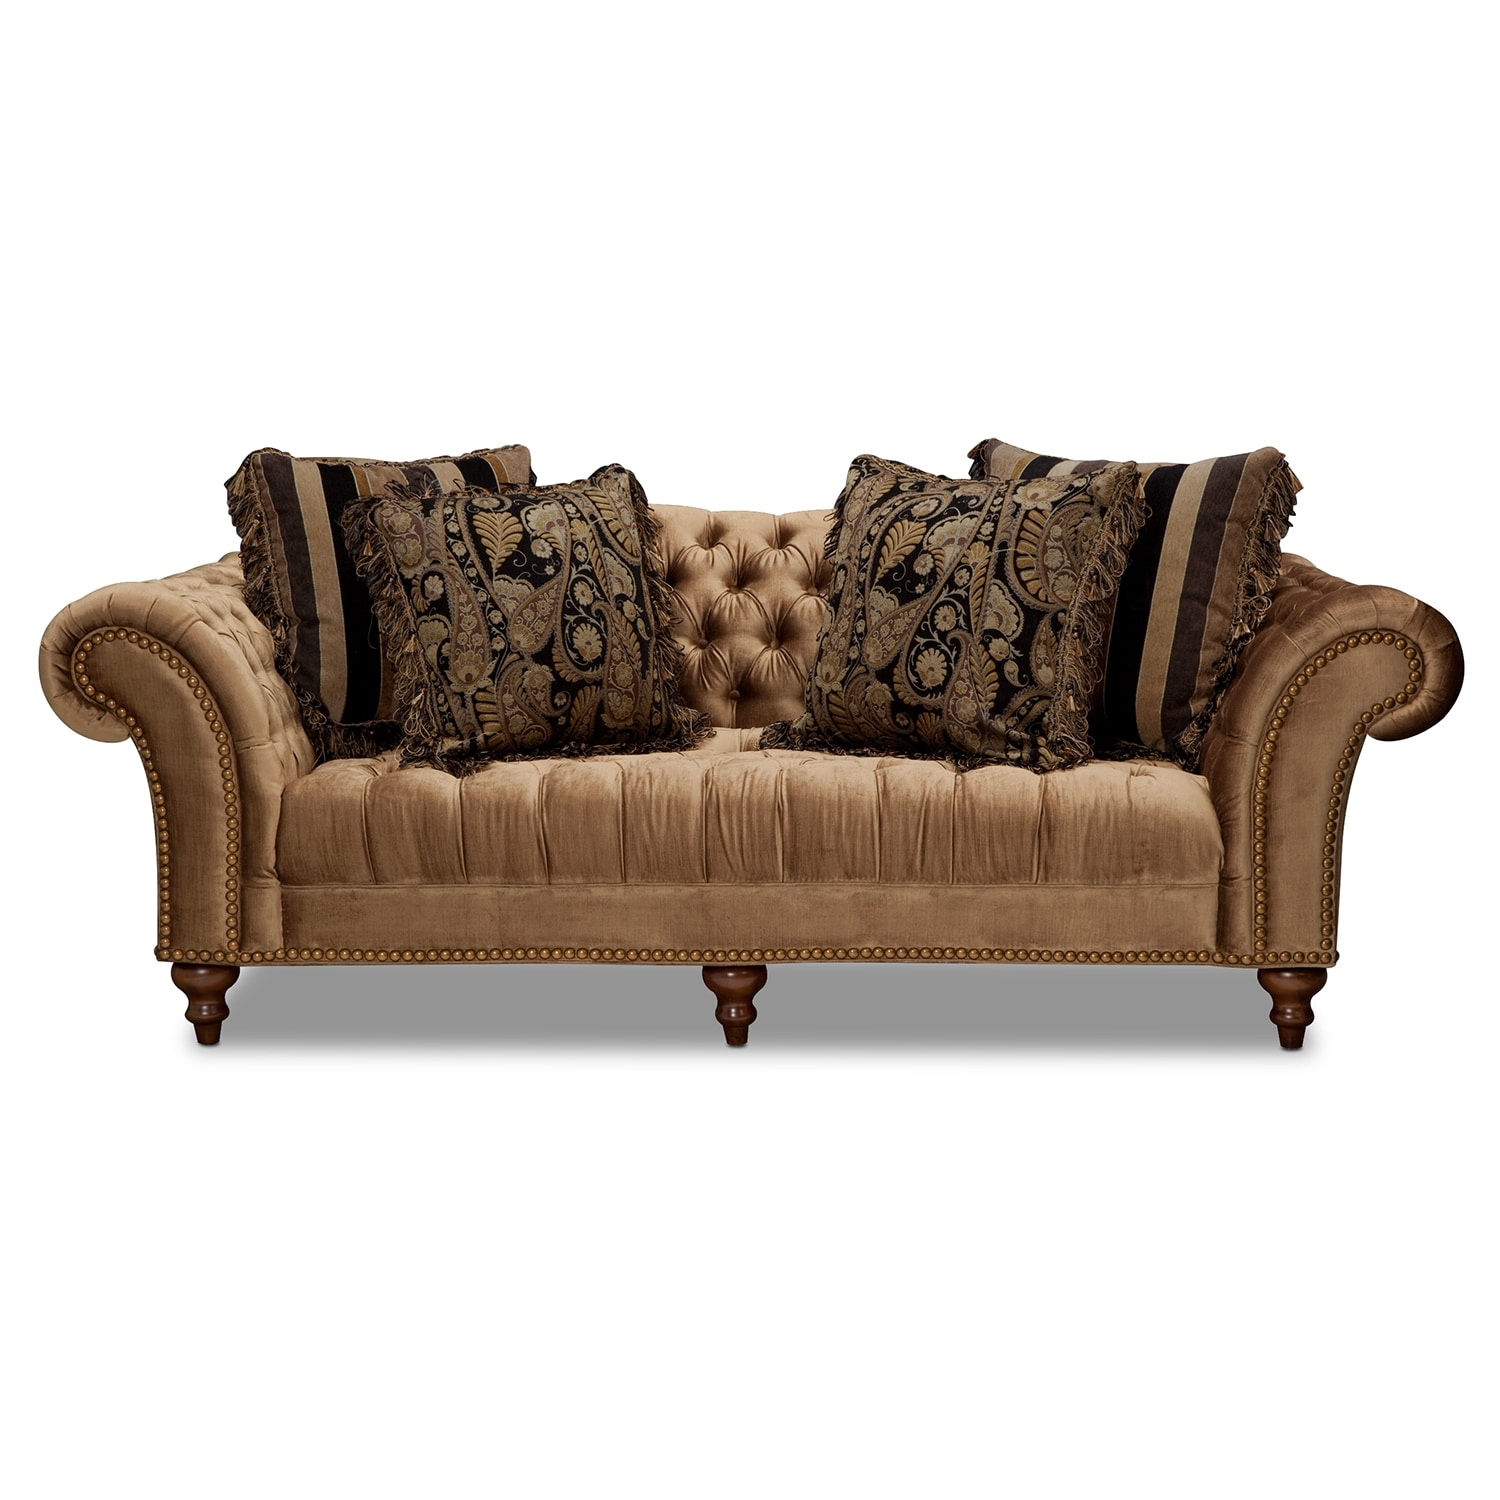 Brittney sofa bronze american signature furniture for American signature couch